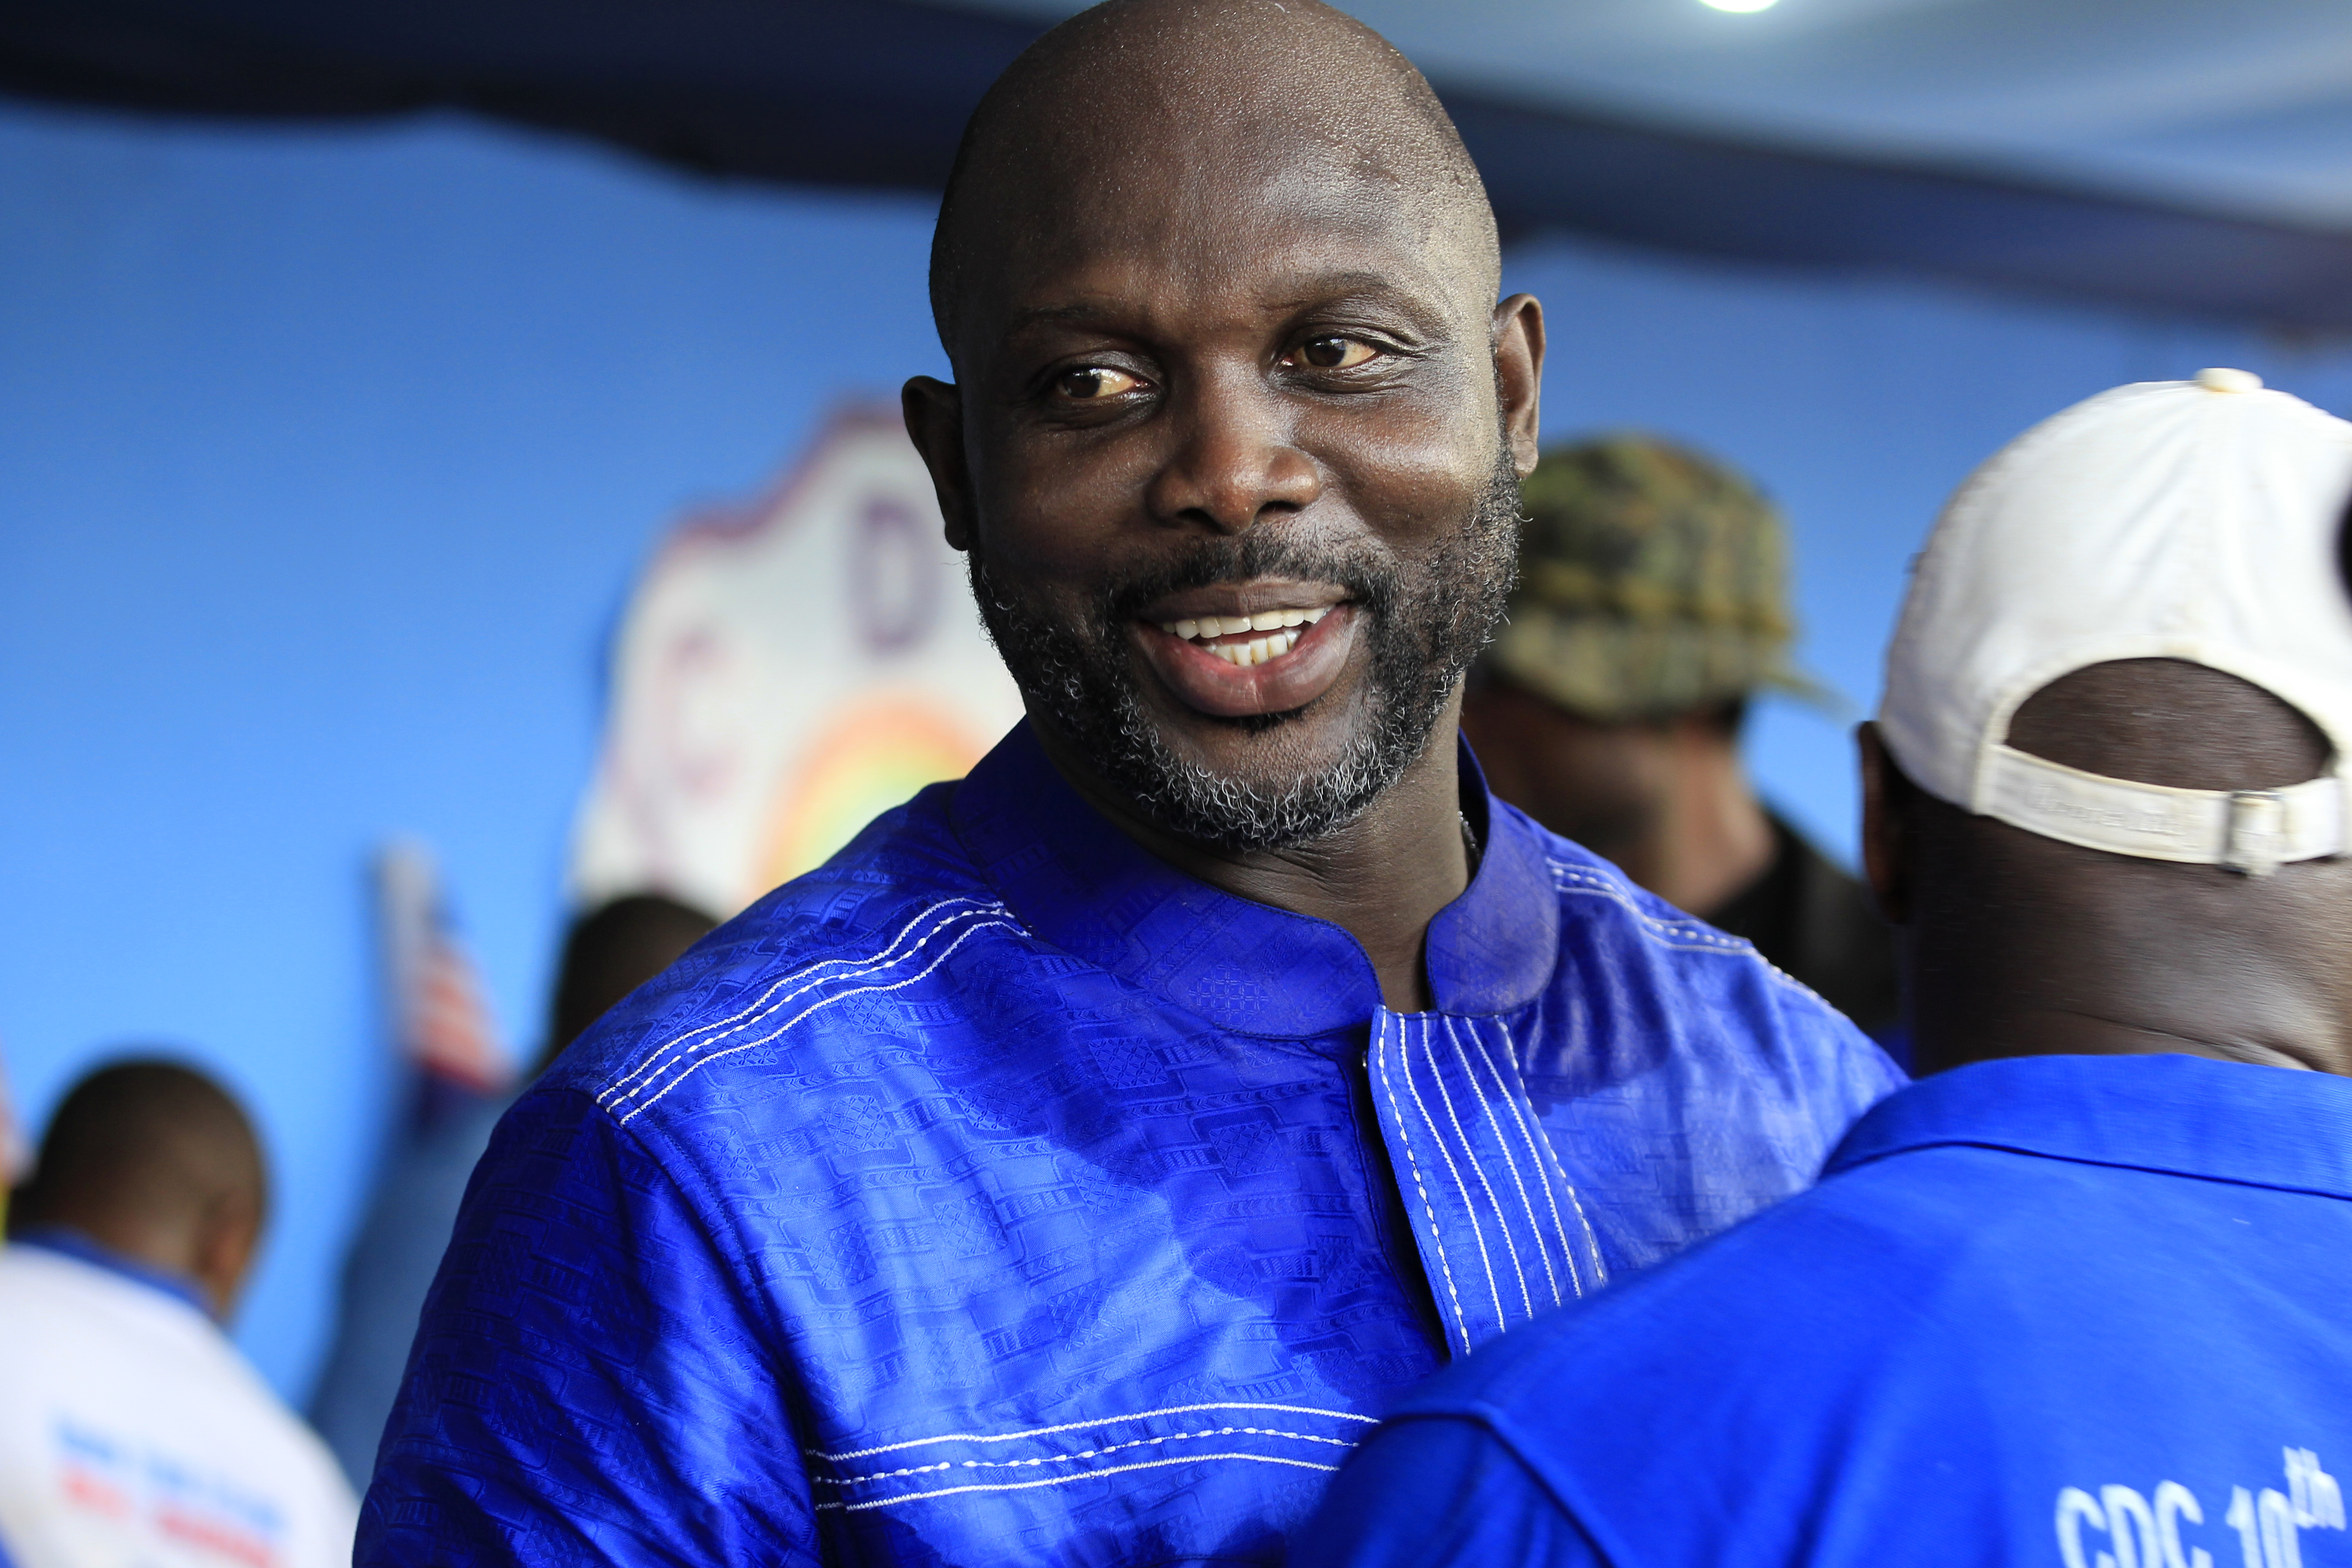 Former Liberian soccer player and current Senator George Weah smiles after addressing thousands of supporters of the Congress for Democratic Change (CDC) party who petitioned him to contest Liberia's Presidential elections in 2017, at Party headquarters in Monrovia, Liberia, 28 April 2016. George Weah contested the 2005 and 2011 Presidential elections, but lost to incumbent Ellen Johnson Sirleaf on both occasions. Sirleaf's second term in office will end in 2017.